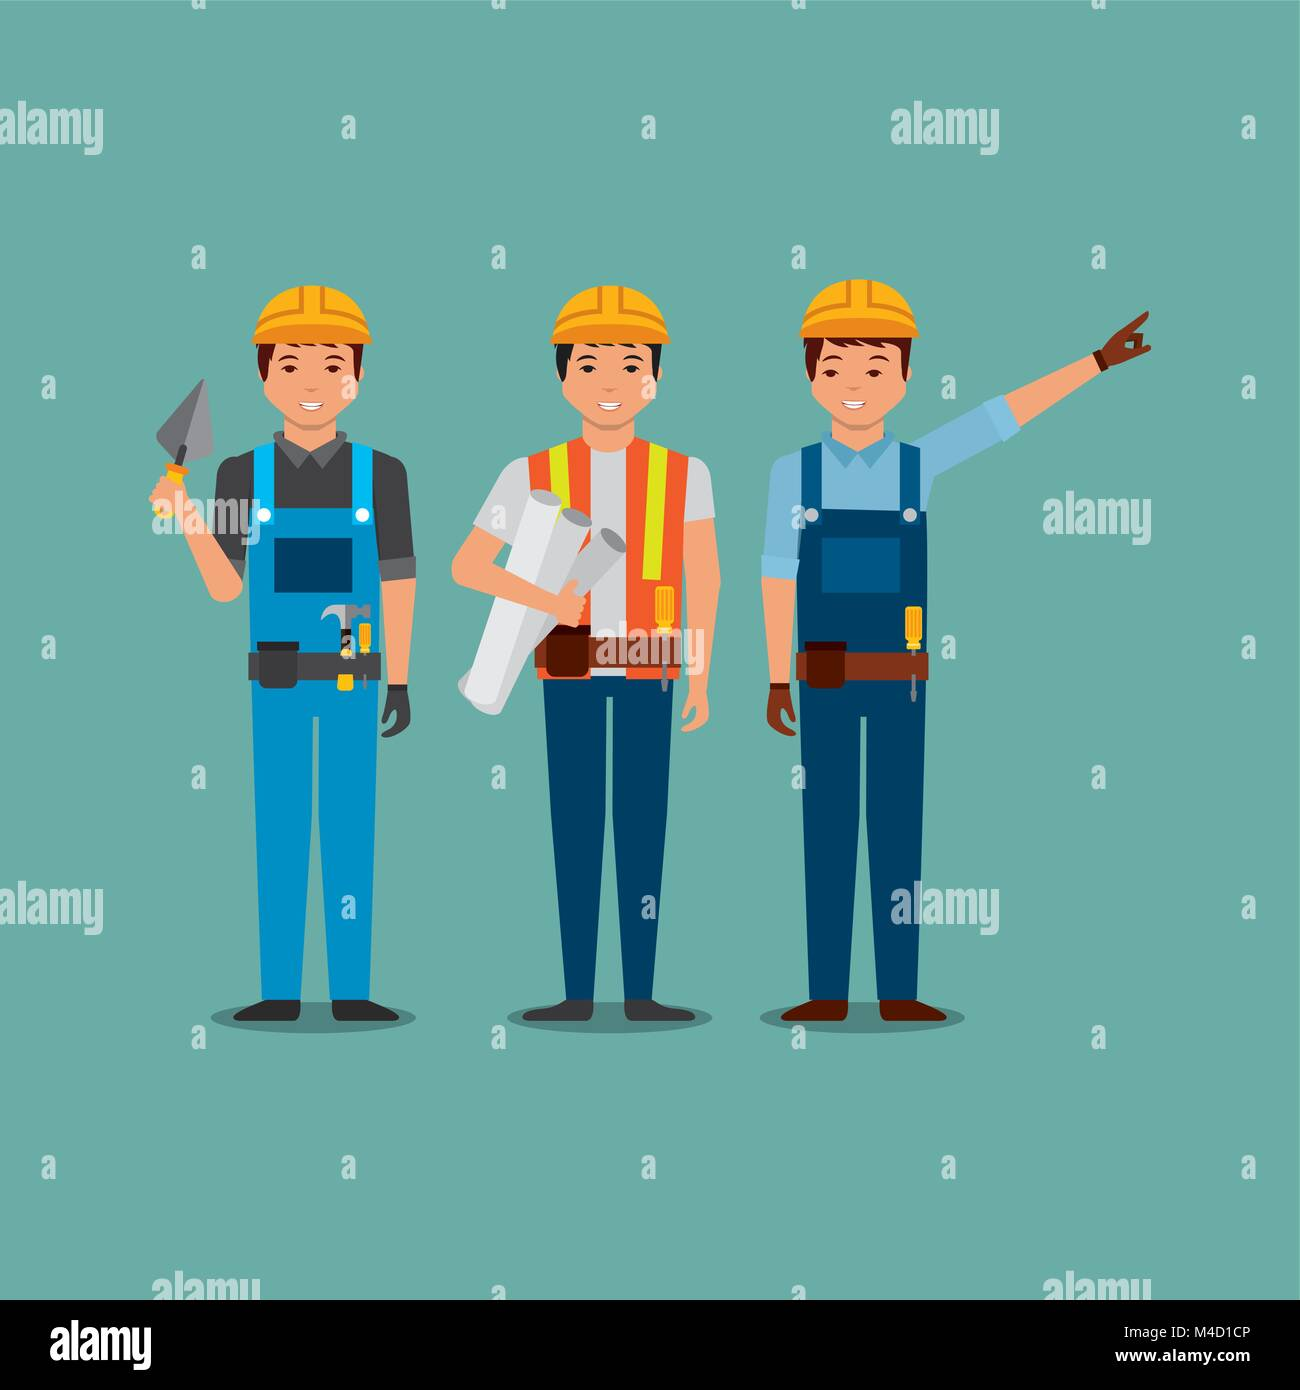 Worker uniforms stock photos worker uniforms stock images alamy construction workers holding blueprint spatula with uniforms stock image malvernweather Choice Image